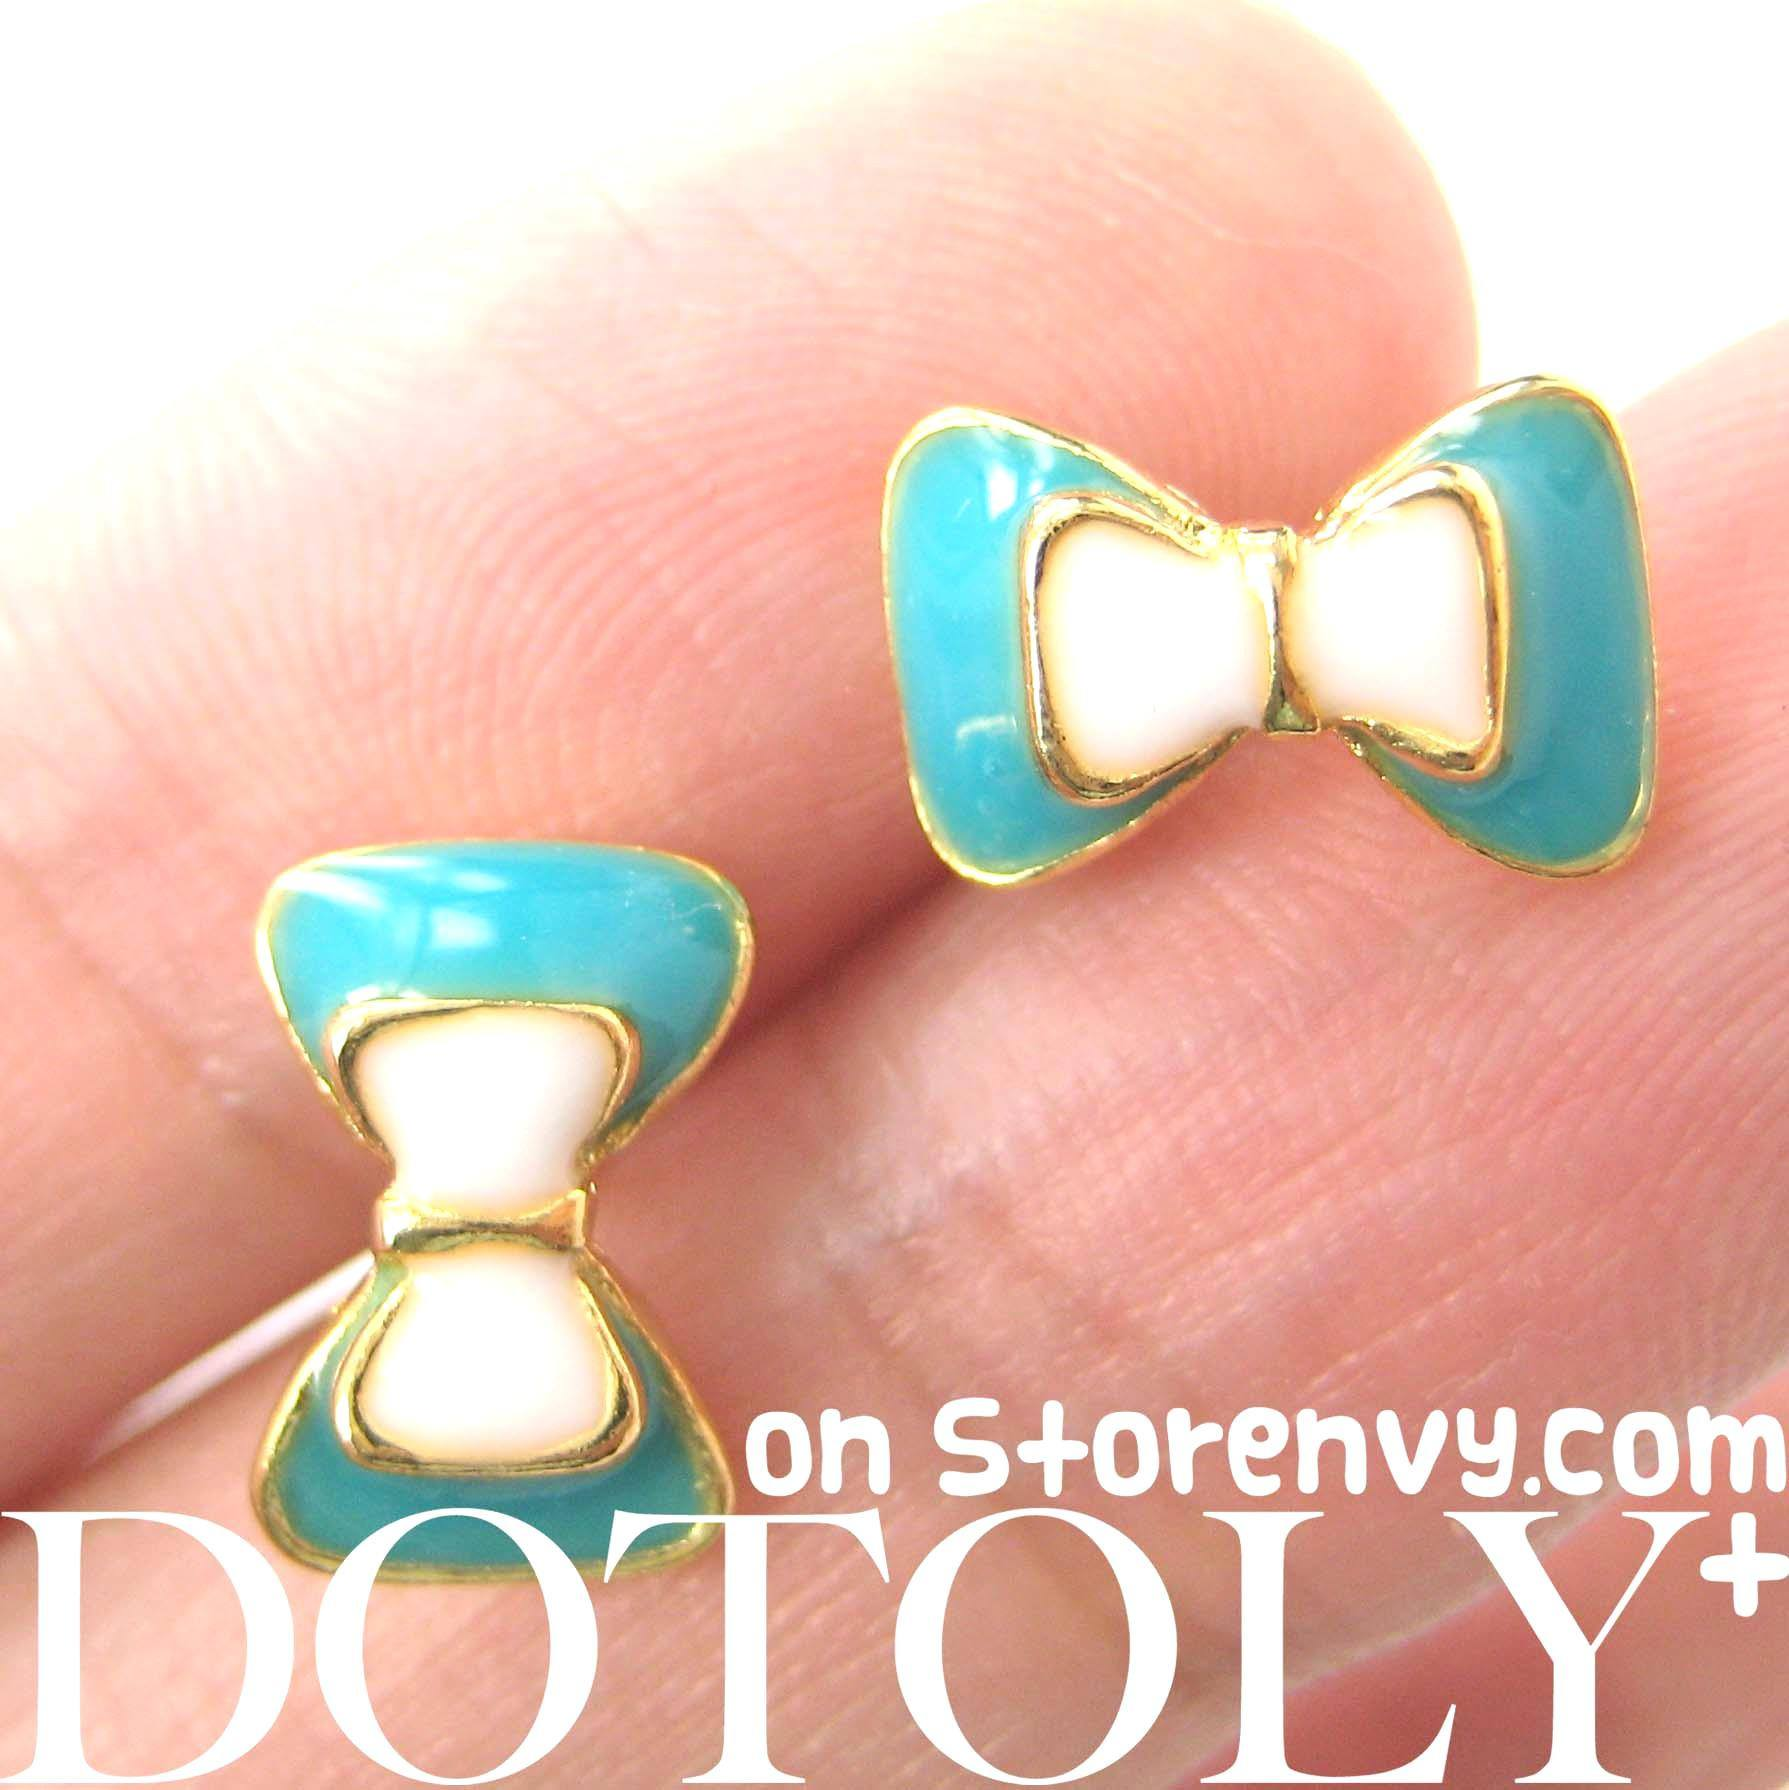 small-bow-tie-ribbon-stud-earrings-in-turquoise-white-and-gold